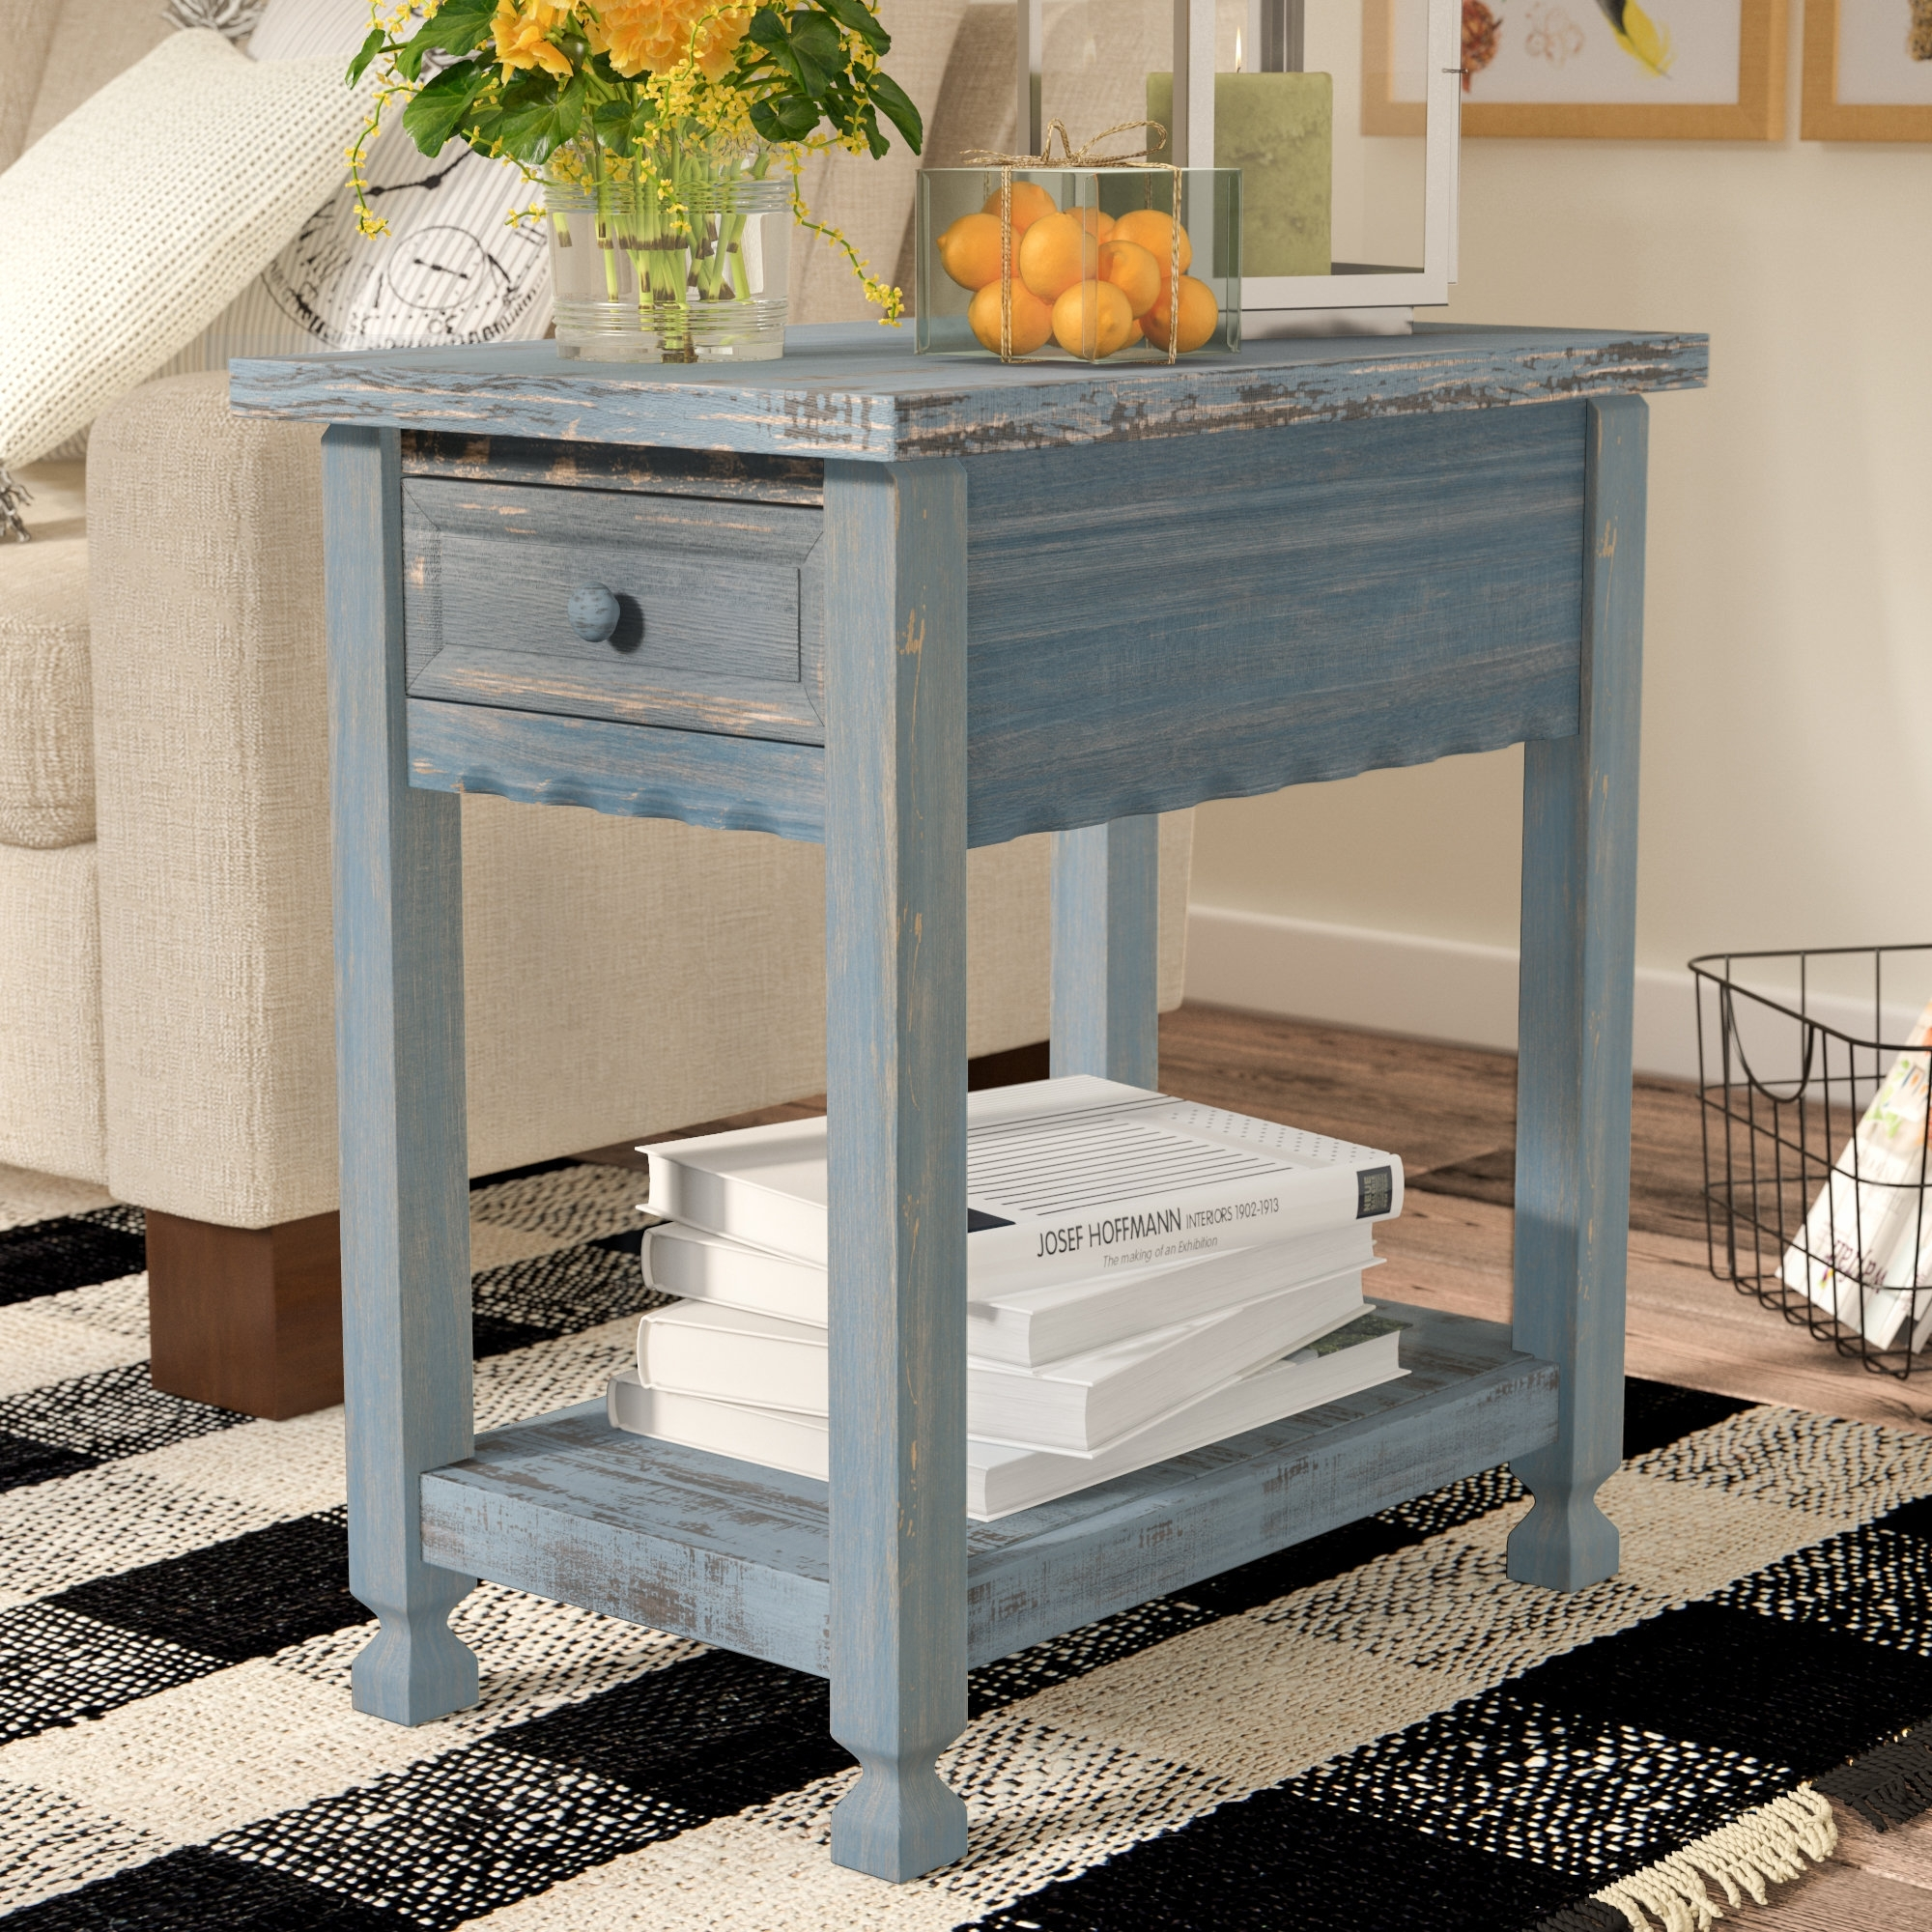 Laurel Foundry Modern Farmhouse Mangum End Table & Reviews | Wayfair for Large-Scale Chinese Farmhouse Coffee Tables (Image 19 of 30)